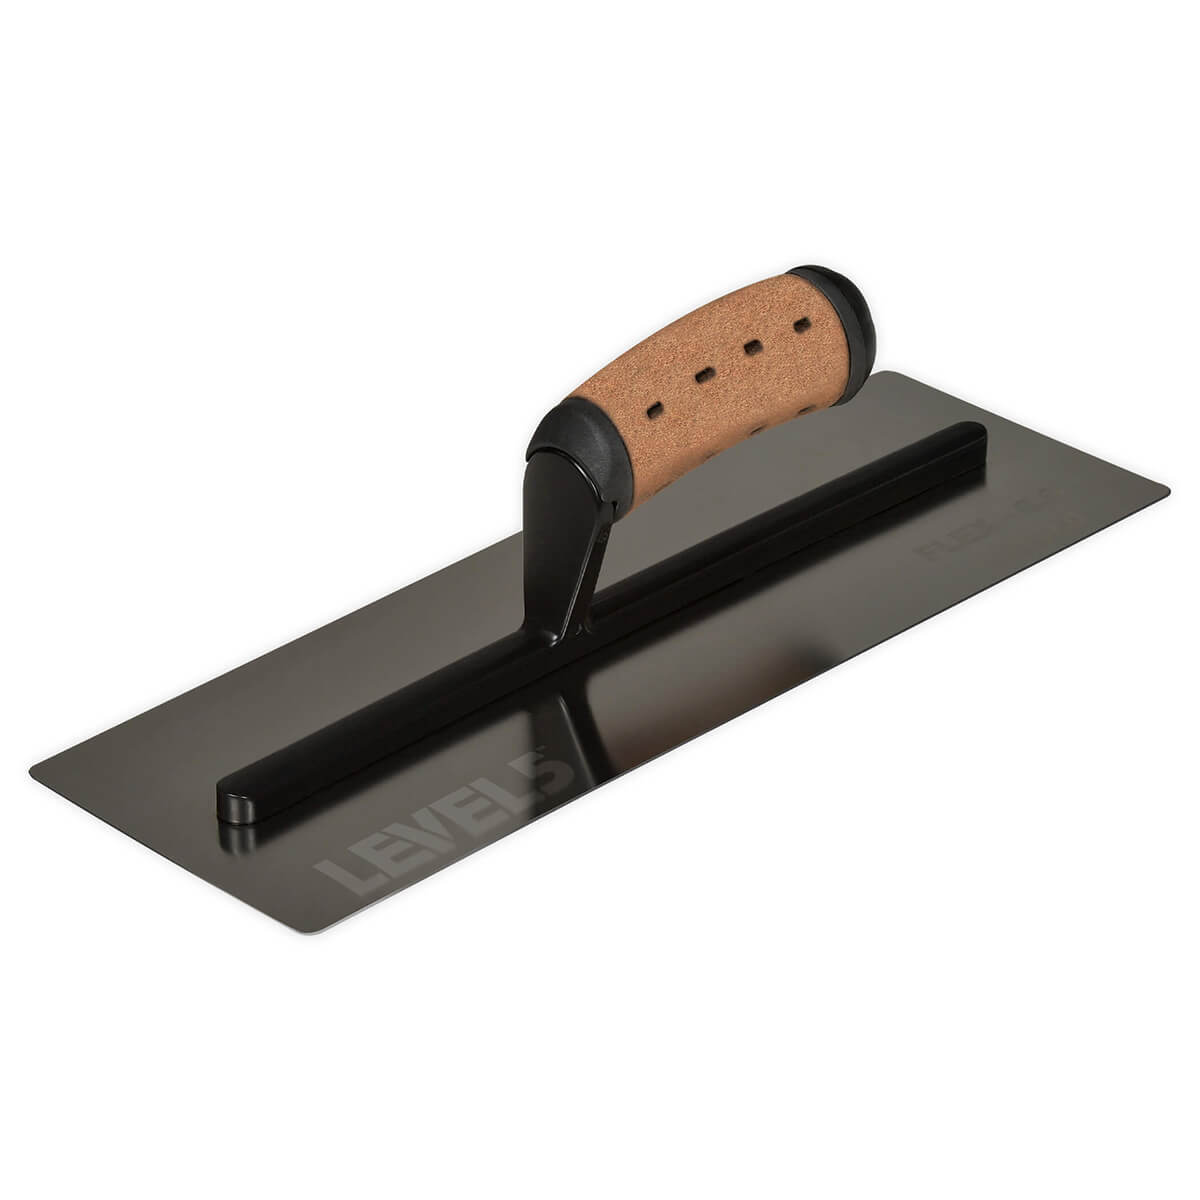 LEVEL5 14-Inch FLEX Finishing Trowel | 0.5mm Curved Blade | 4-989